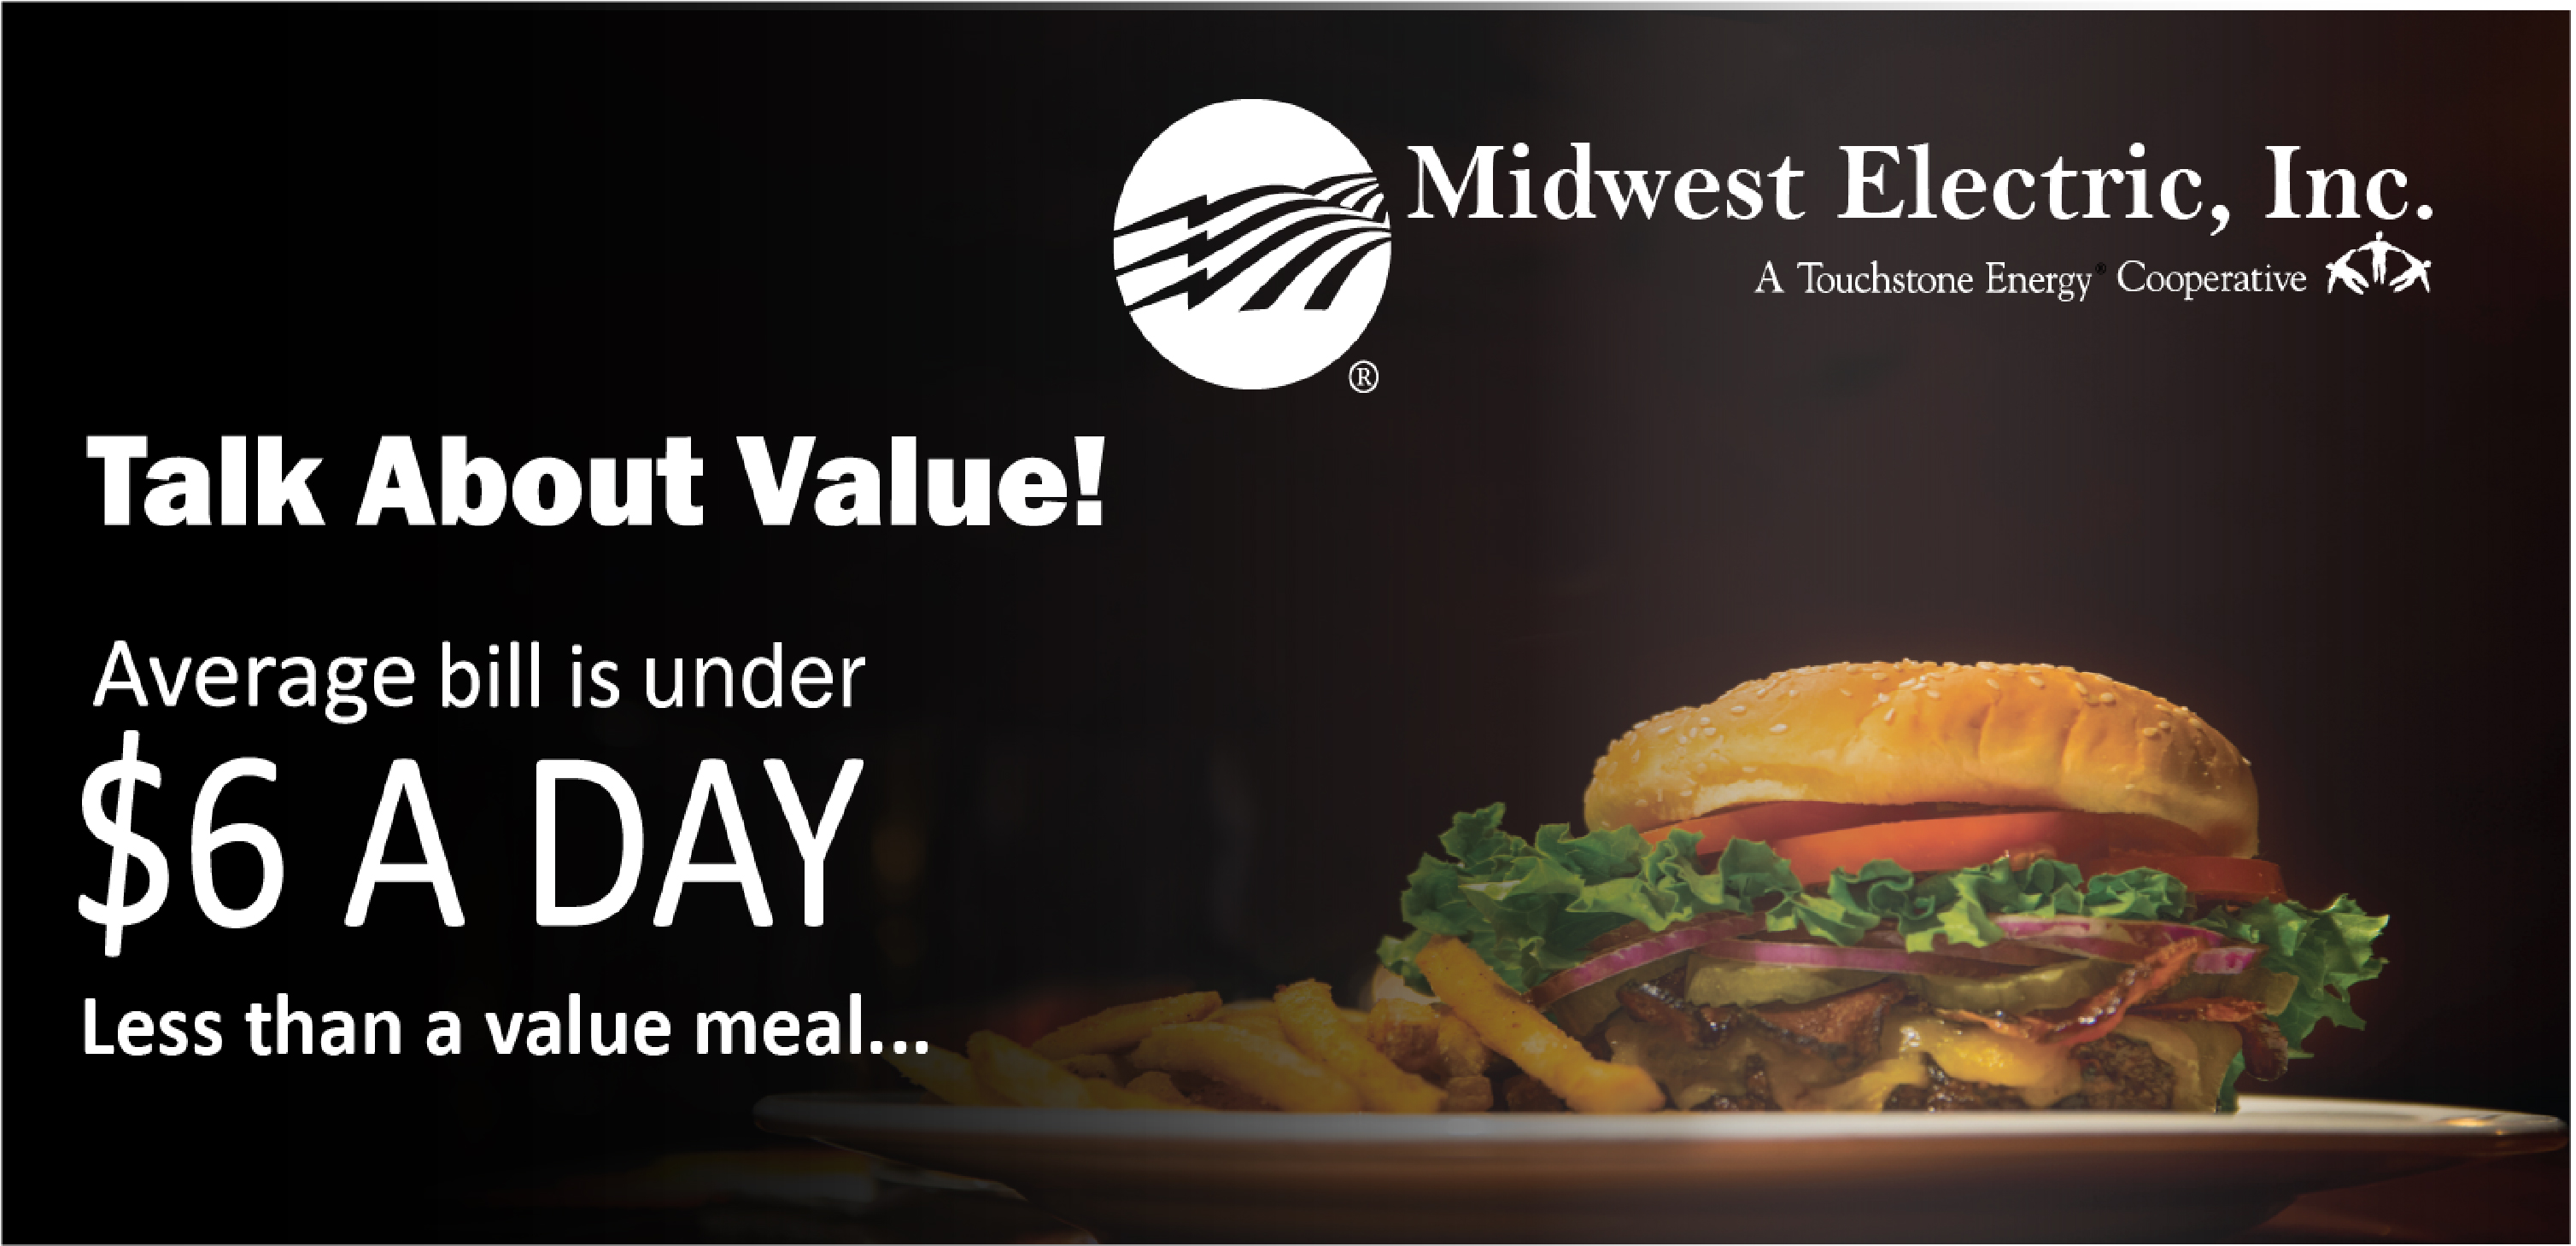 Electricity is an unbeatable value. Your daily electricity through Midwest costs less than a cheeseburger!